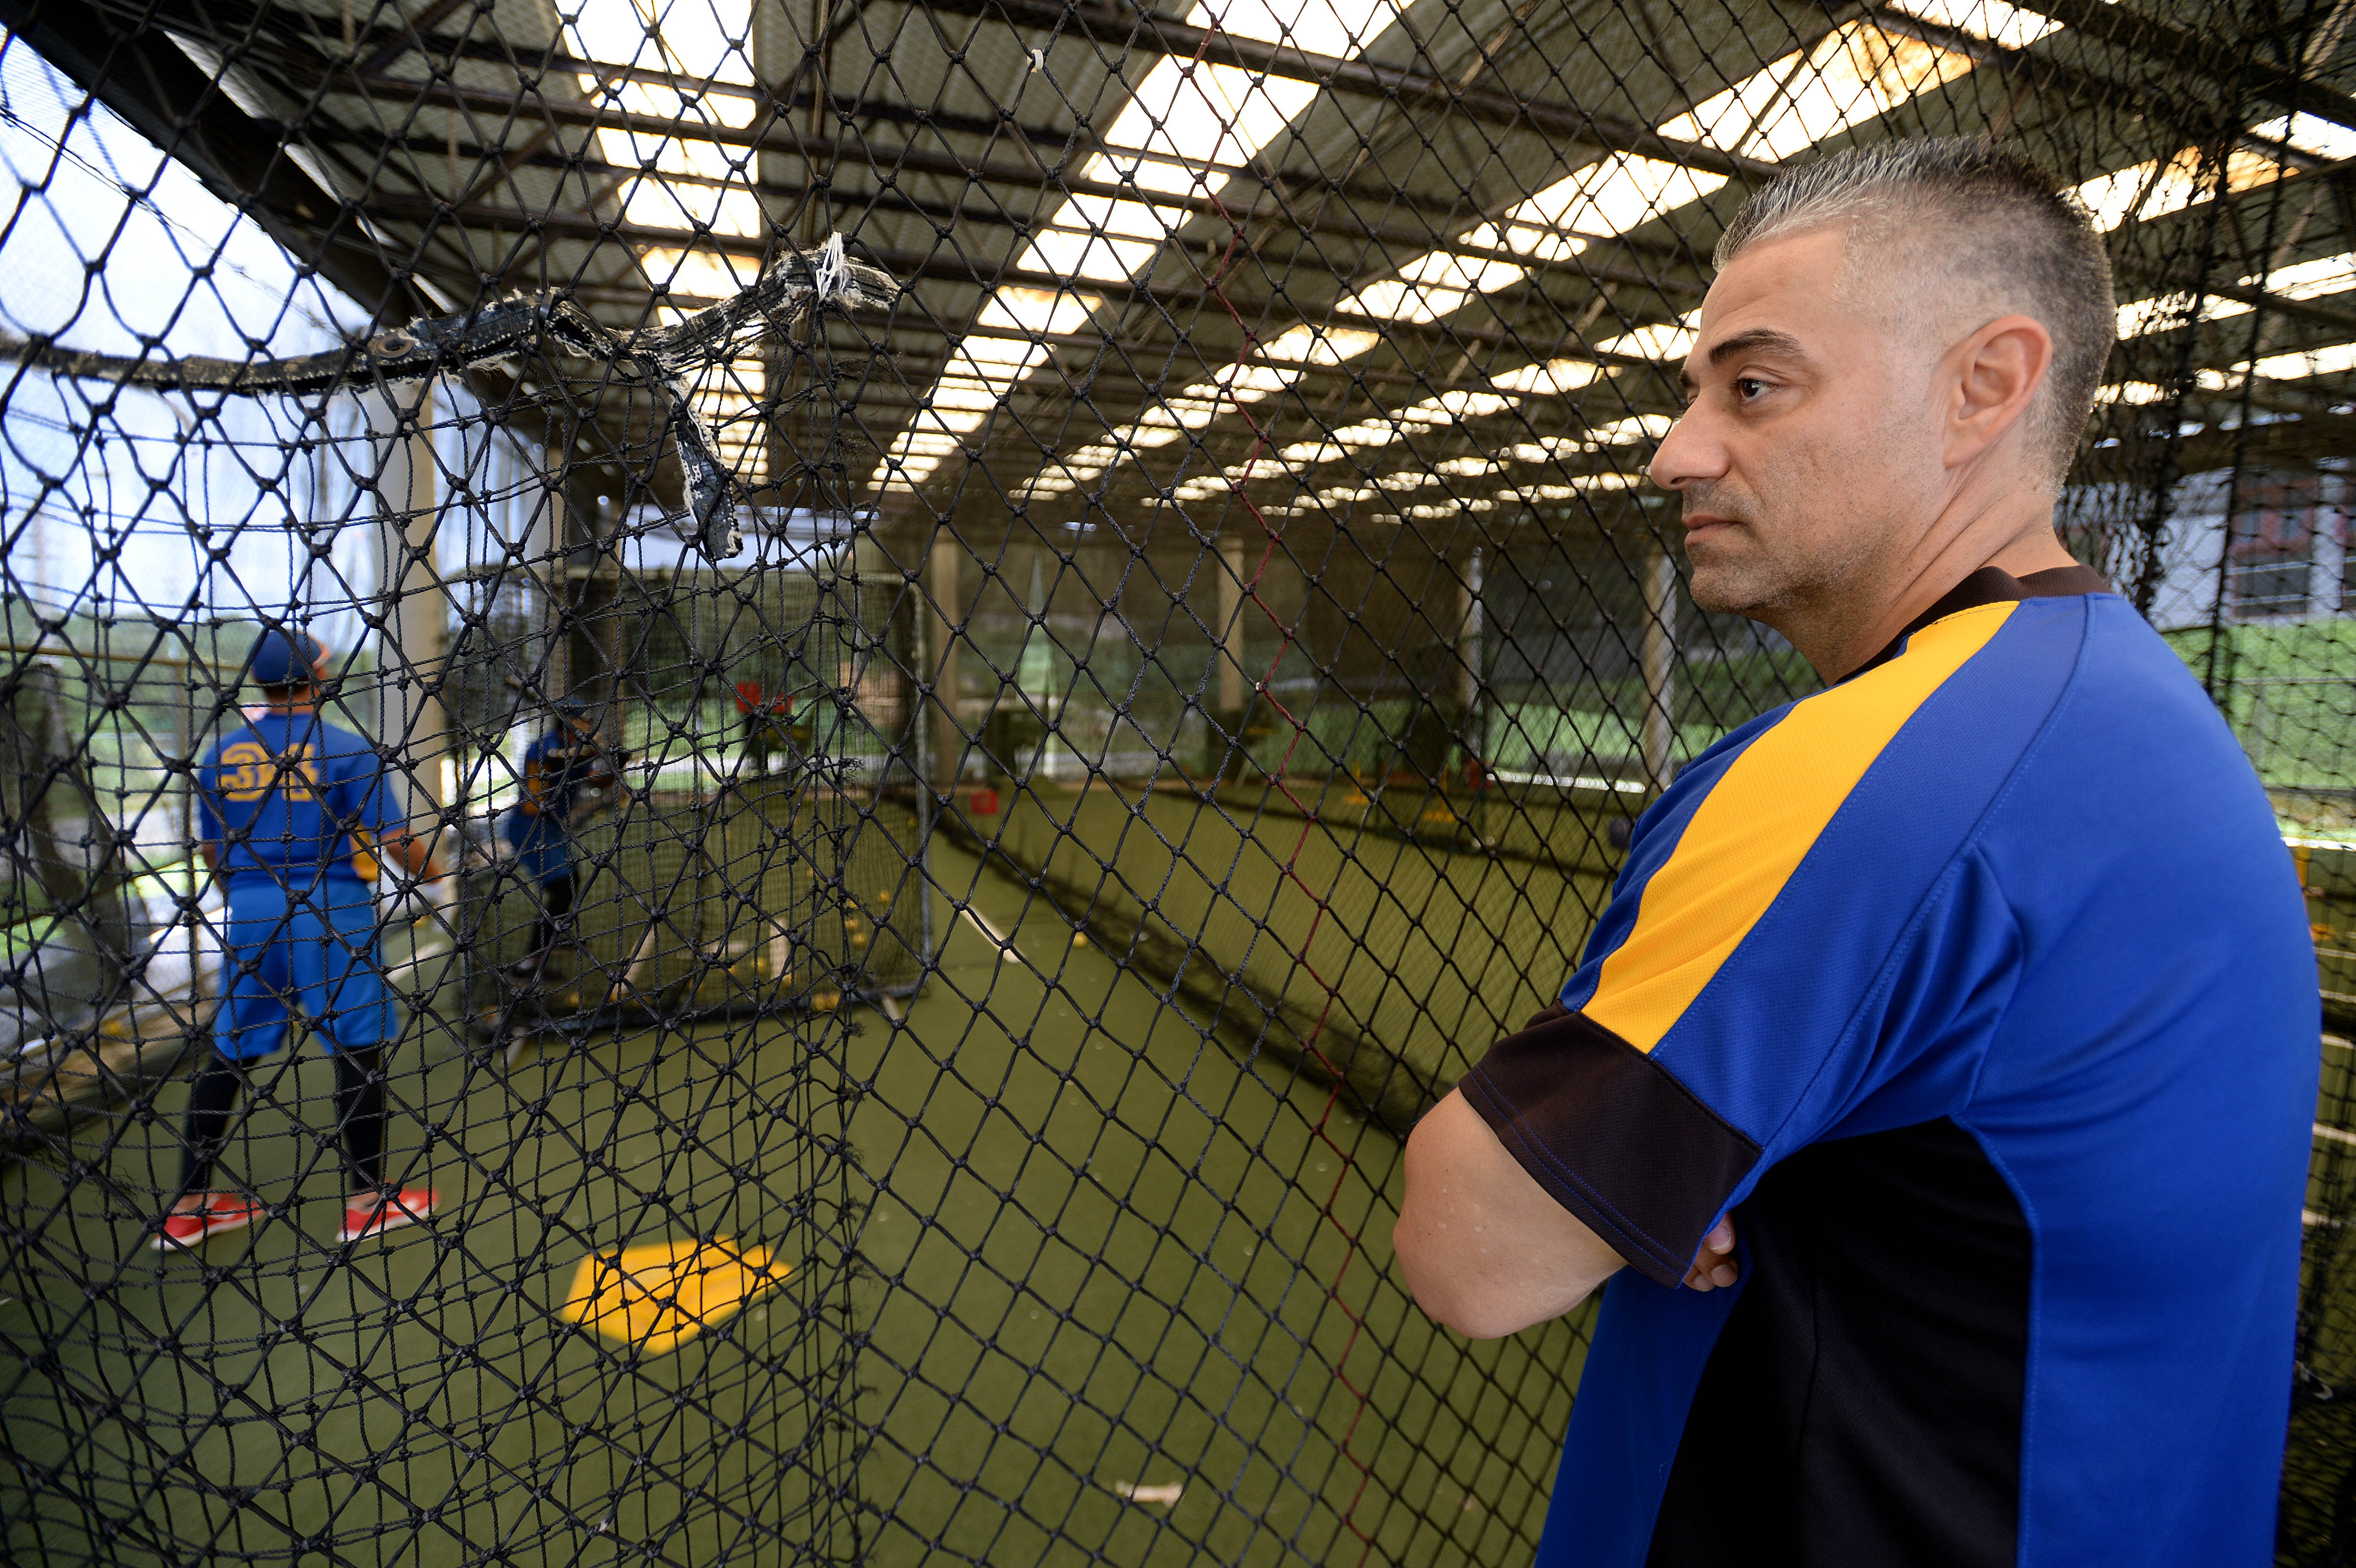 Former Major Leaguer Alex Diaz Watches His Players In The